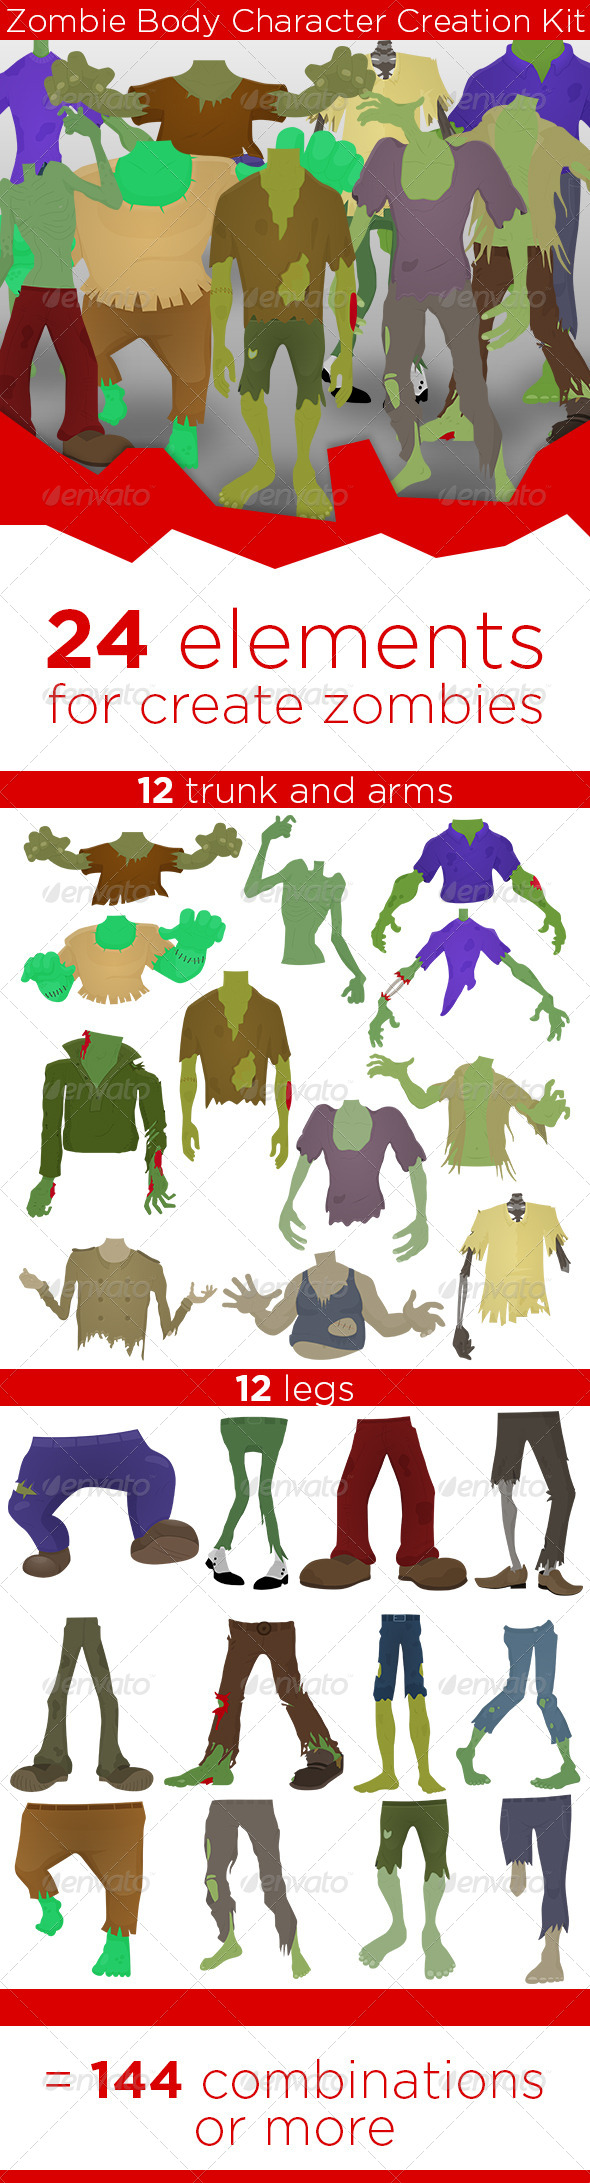 GraphicRiver Zombie Body Character Creation Kit 8011733